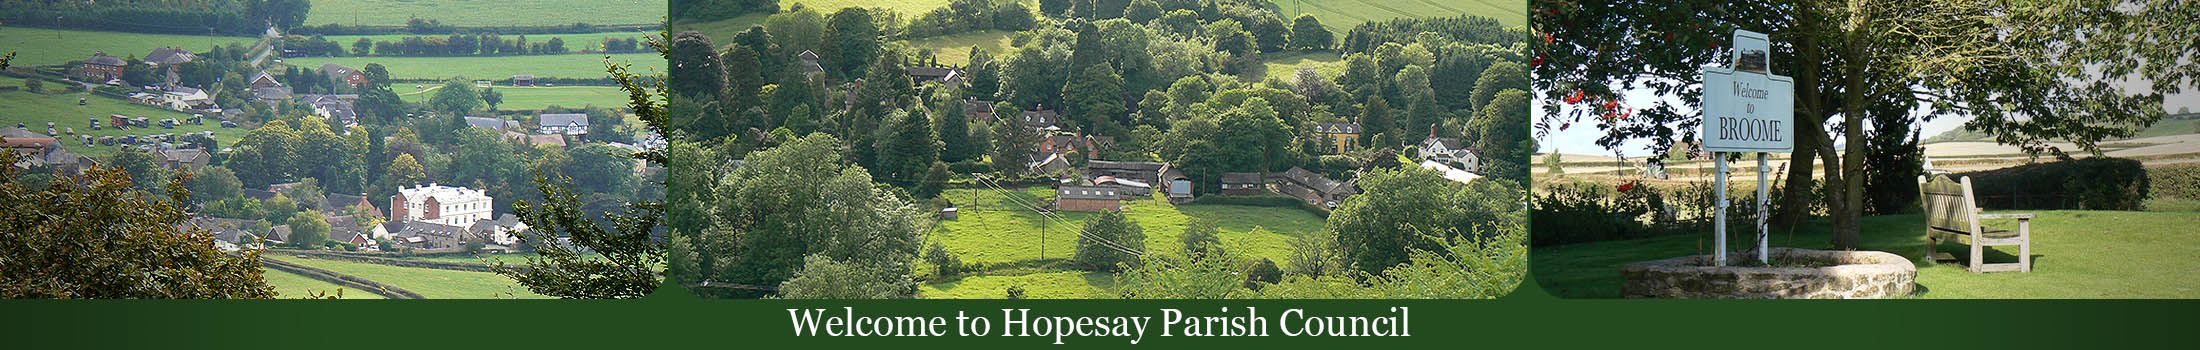 Header Image for Hopesay Parish Council